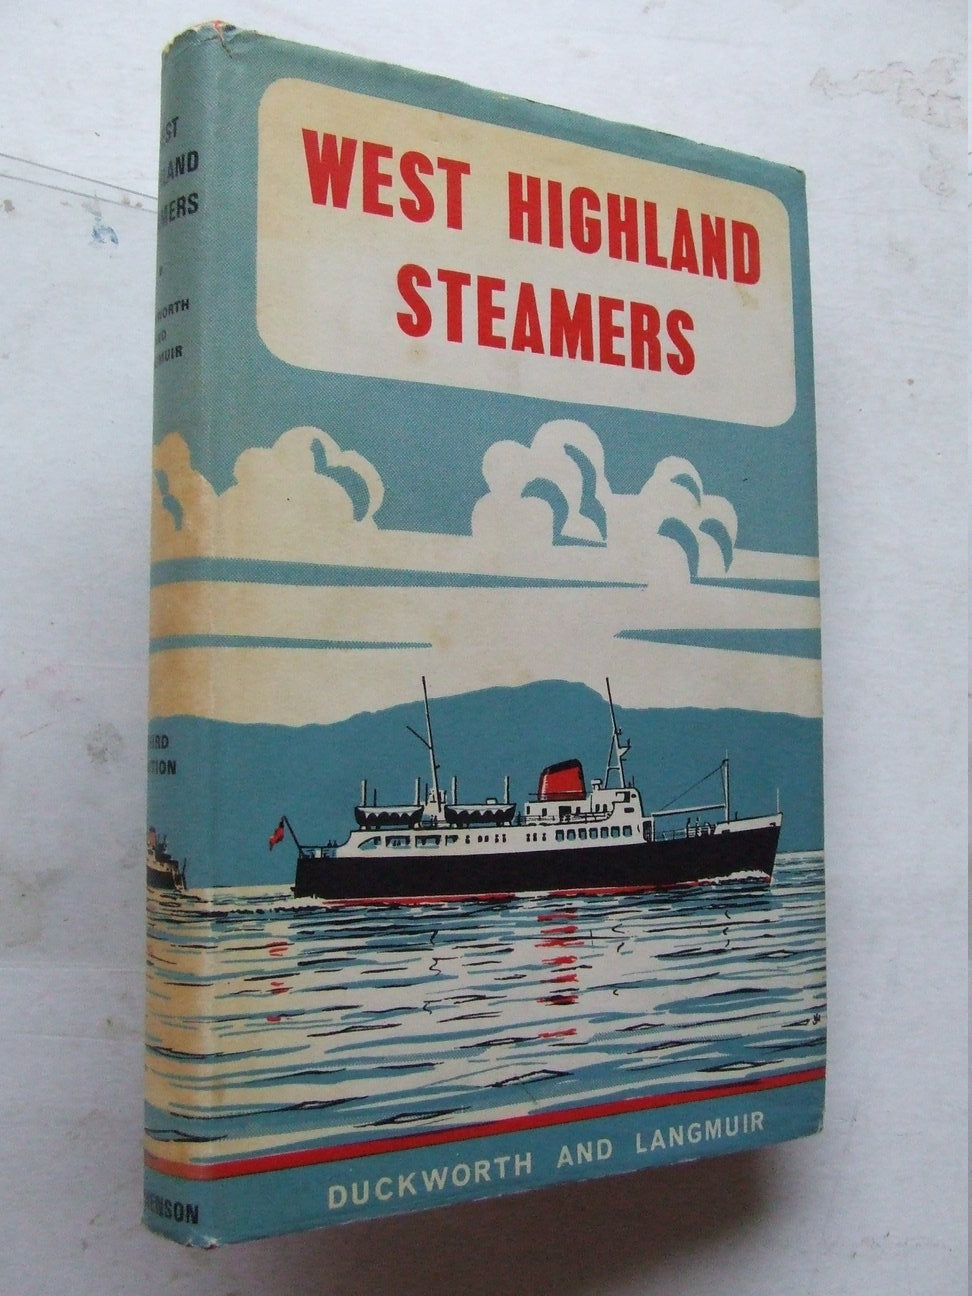 West Highland Steamers. 3rd edition